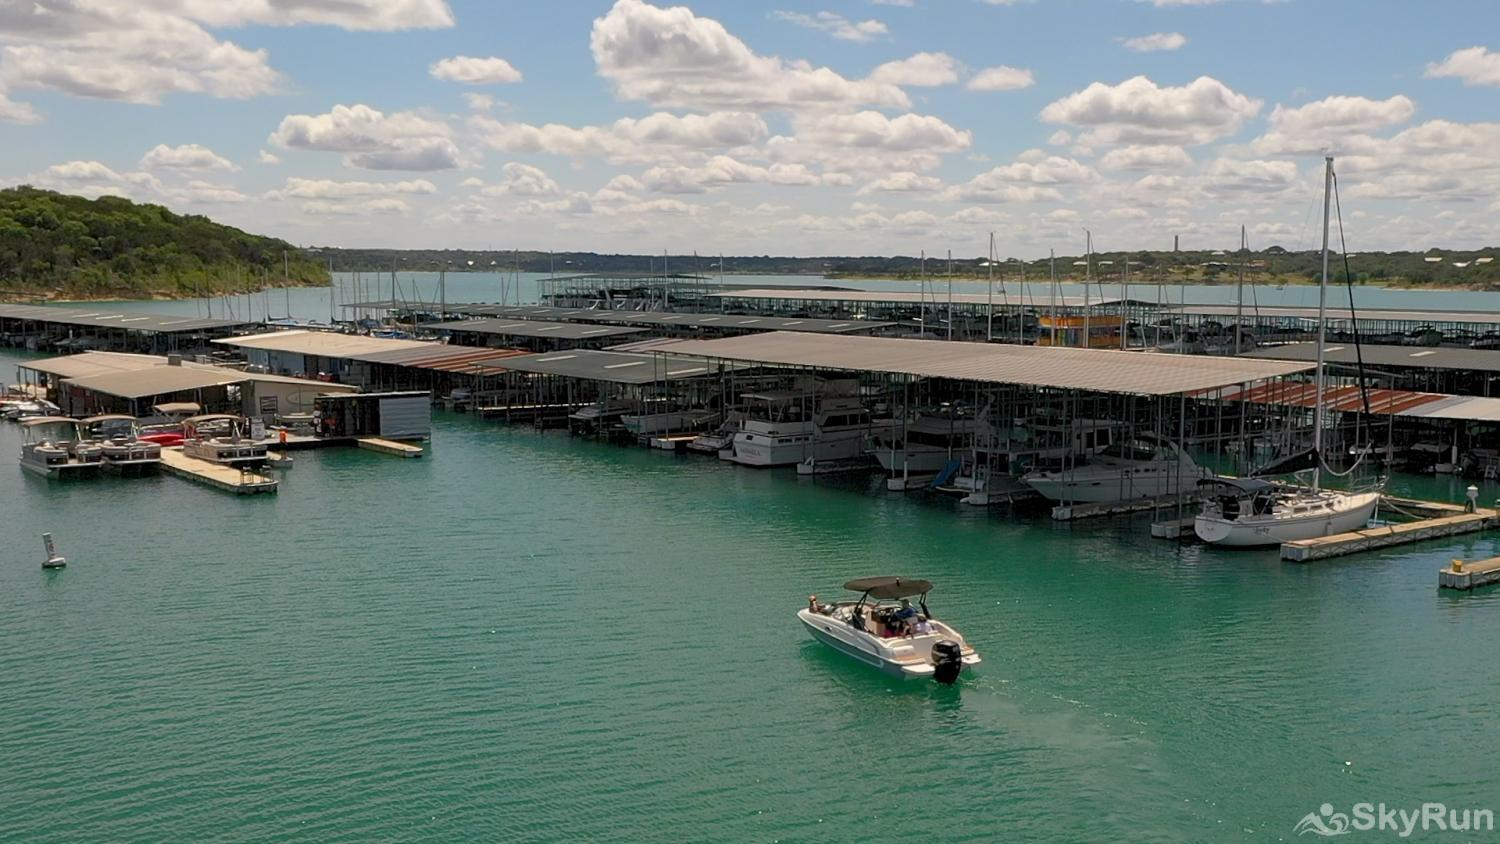 WATERFRONT GRACE Rent a boat at Canyon Lake Marina